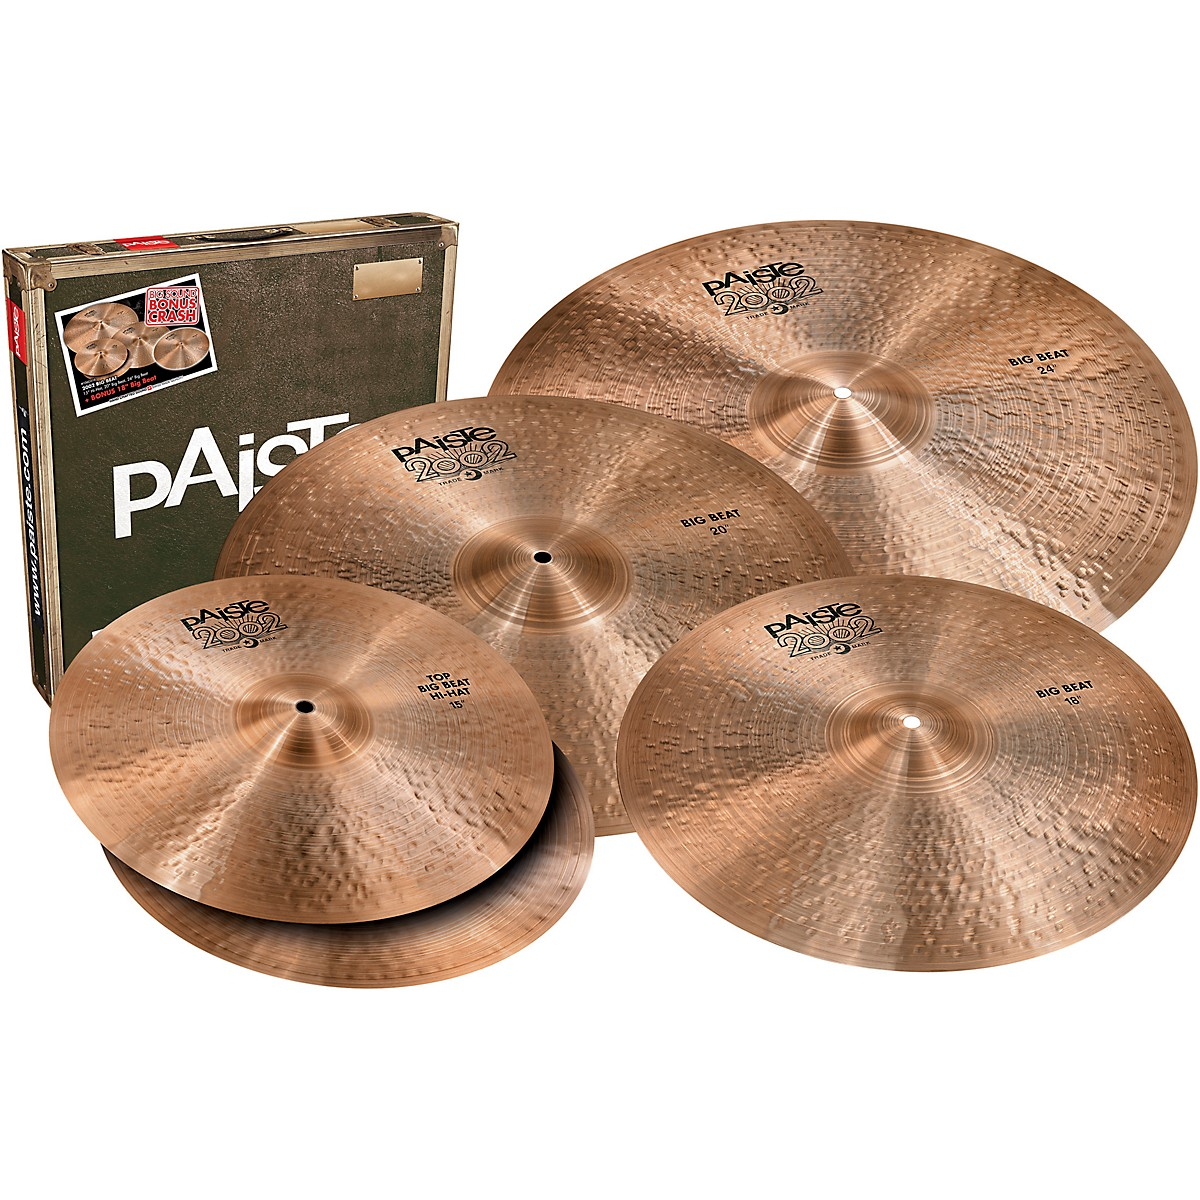 Paiste 2002 Big Beat Big Sound Box Set with Free 18 in. Cymbal